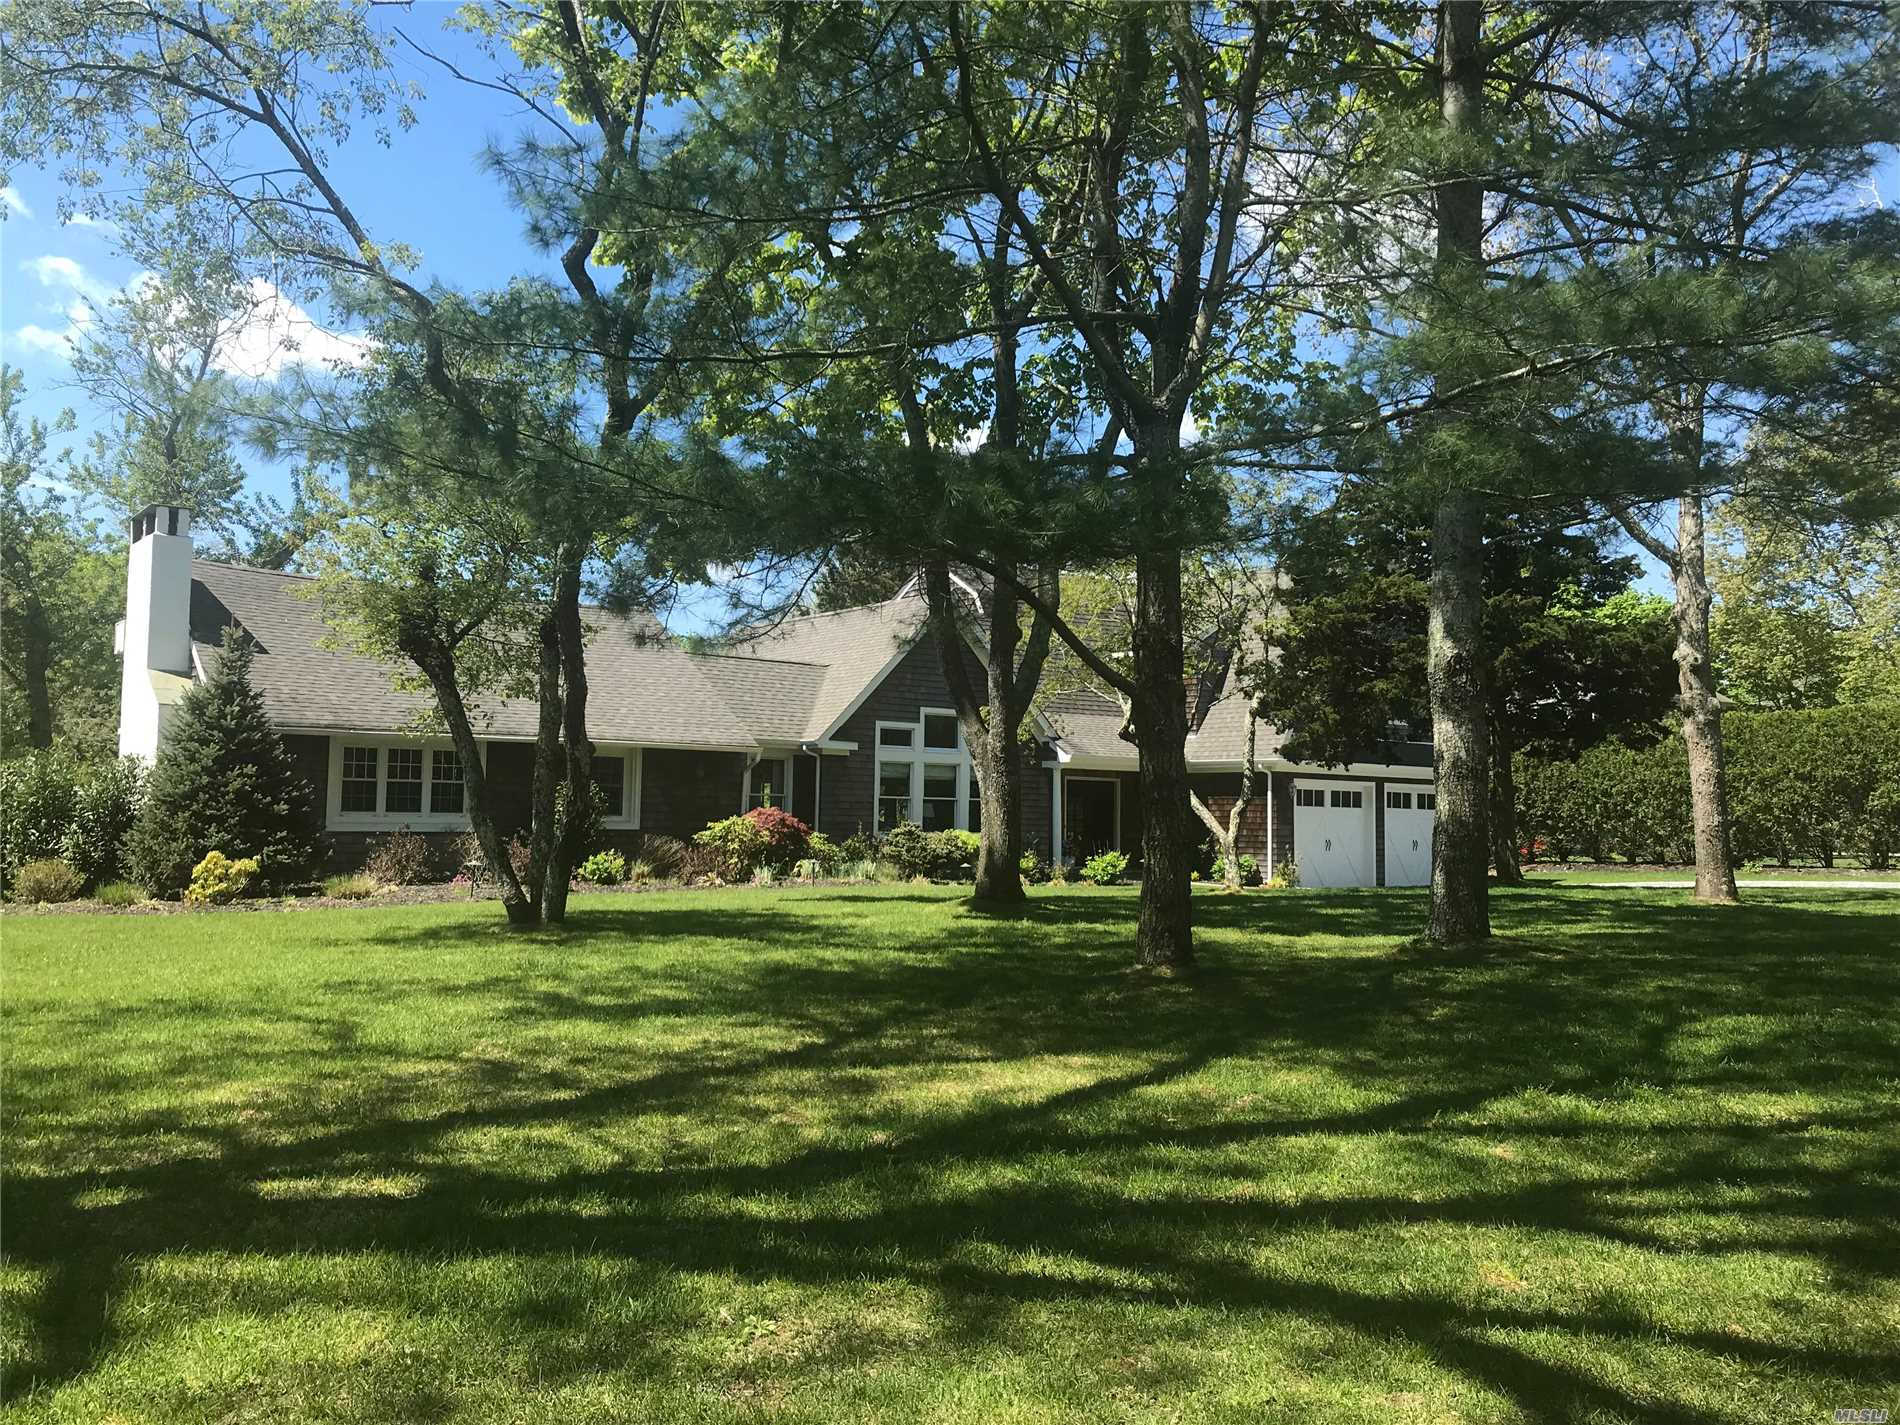 18 Weesuck Ave, E. Quogue, NY 11942 now has a new price of $70,000!